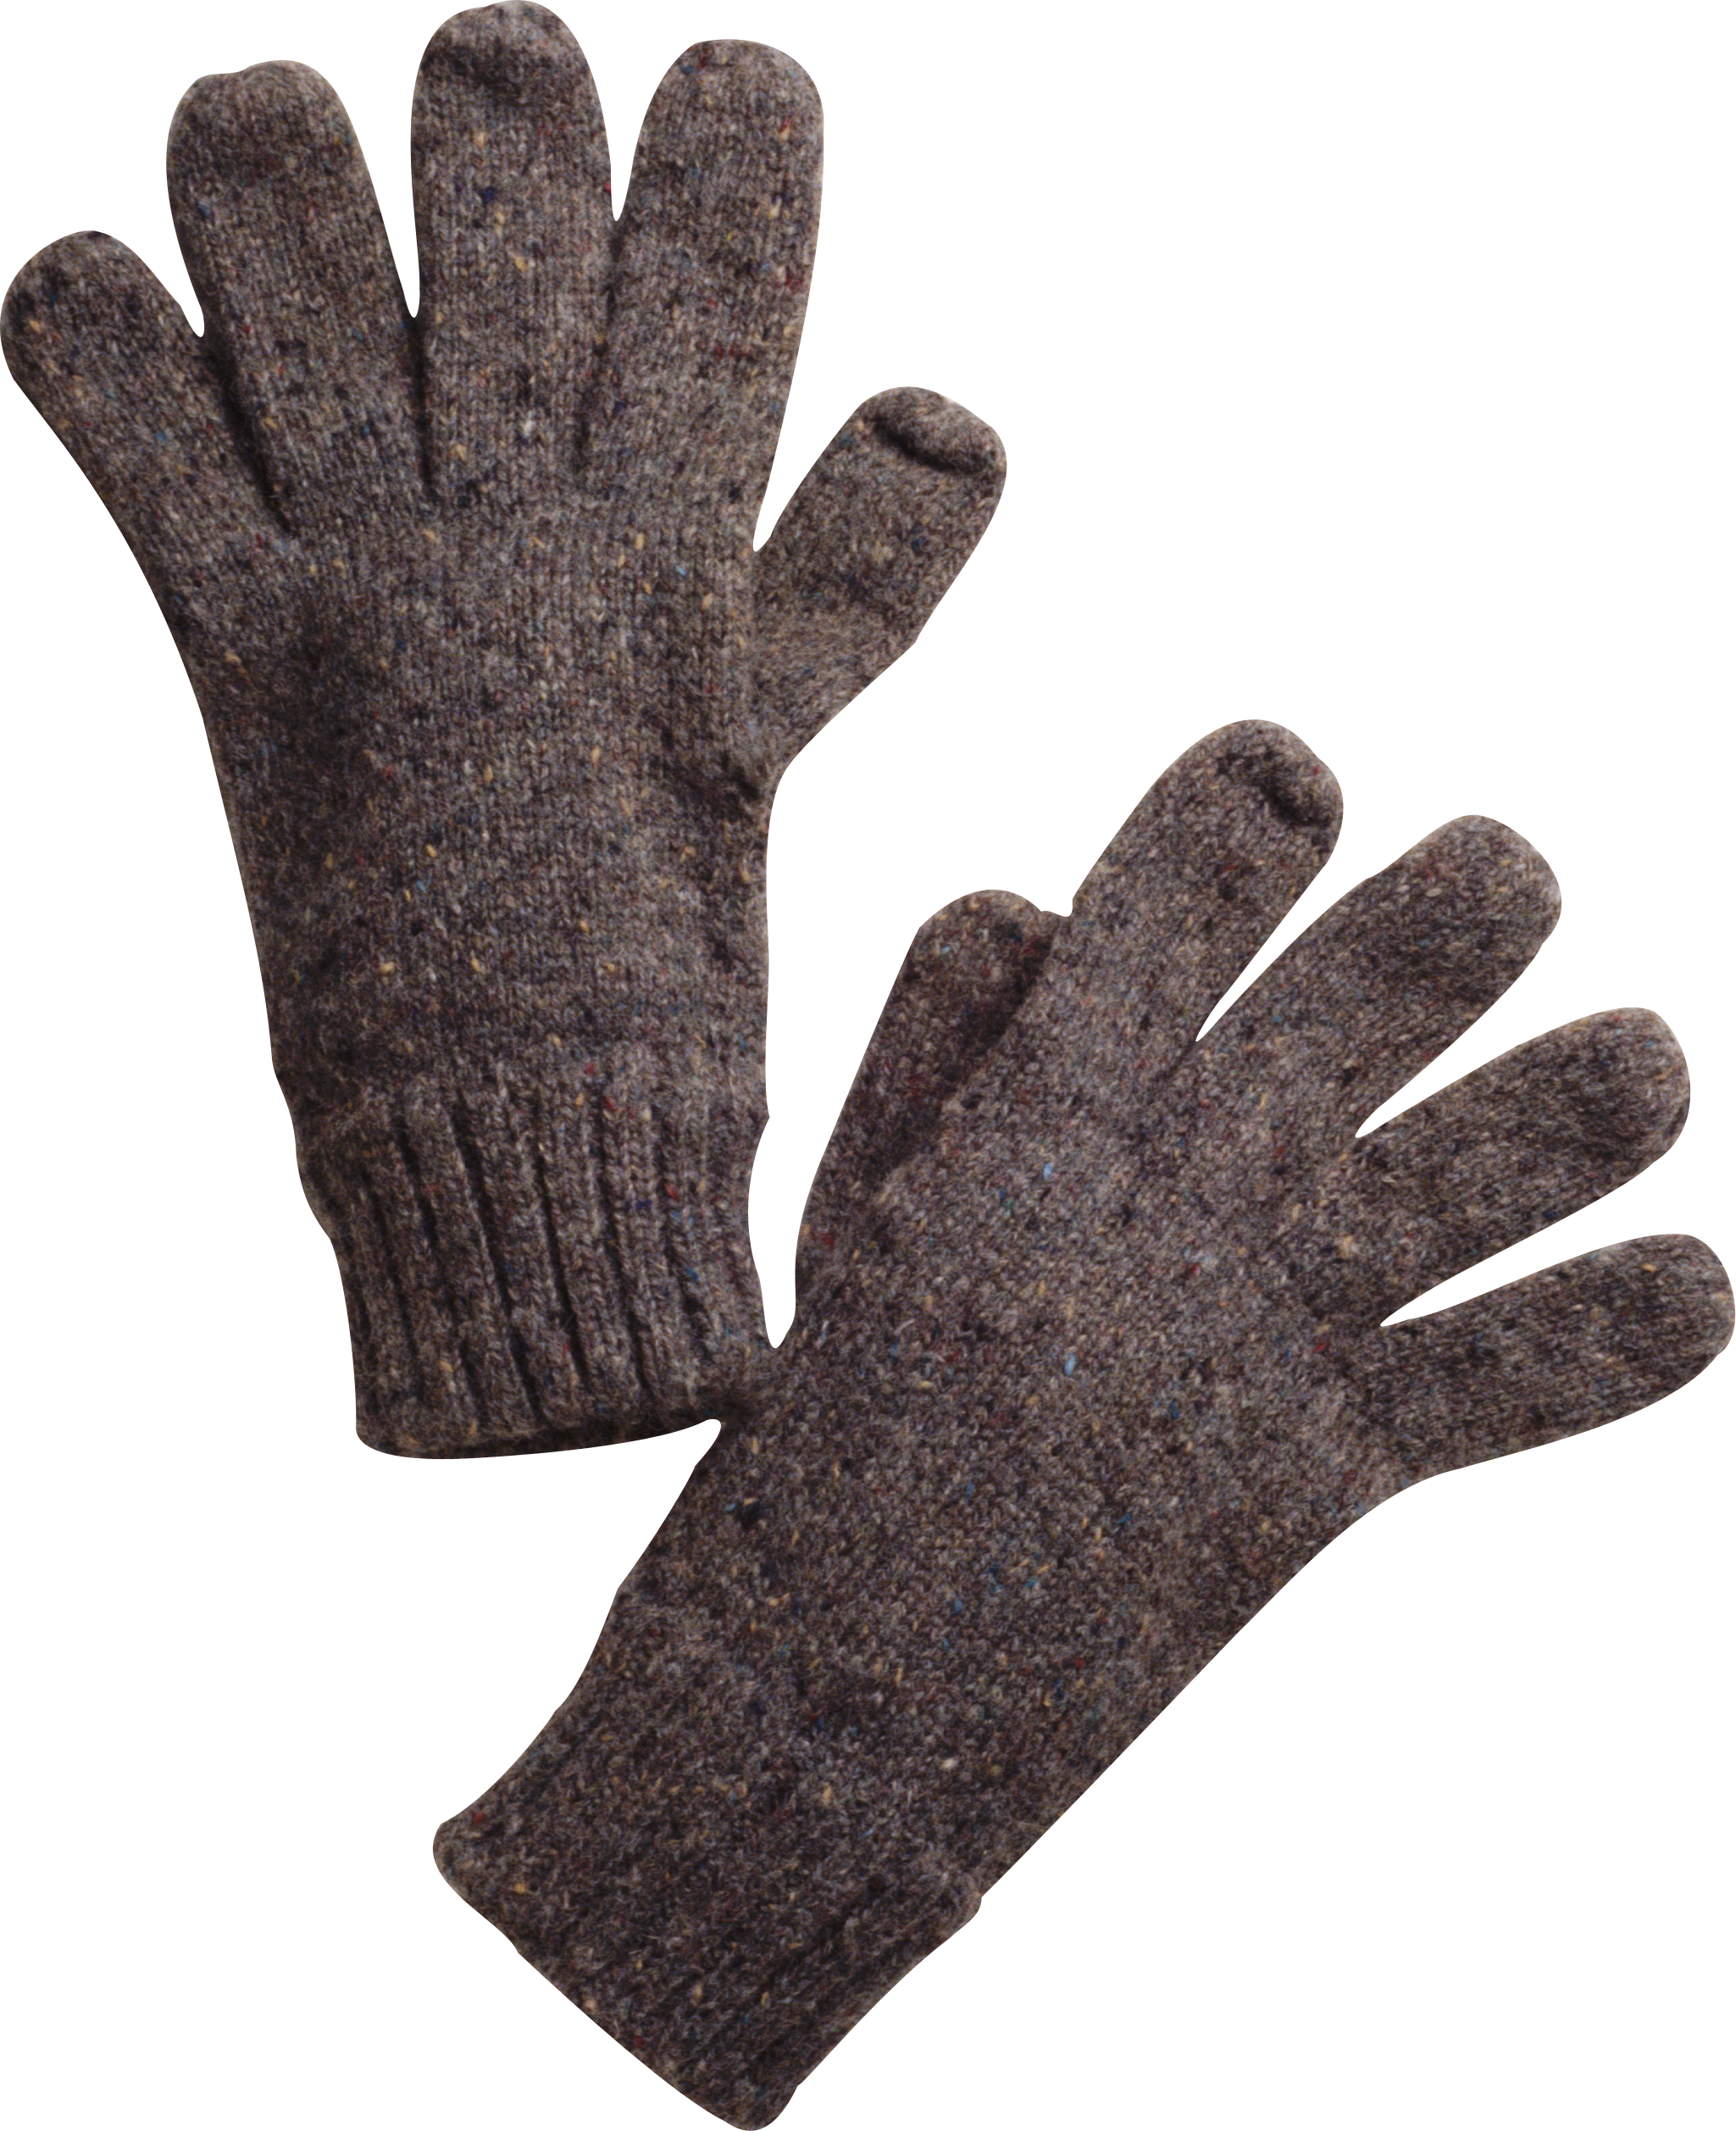 Winter gloves png image. Mittens clipart transparent background